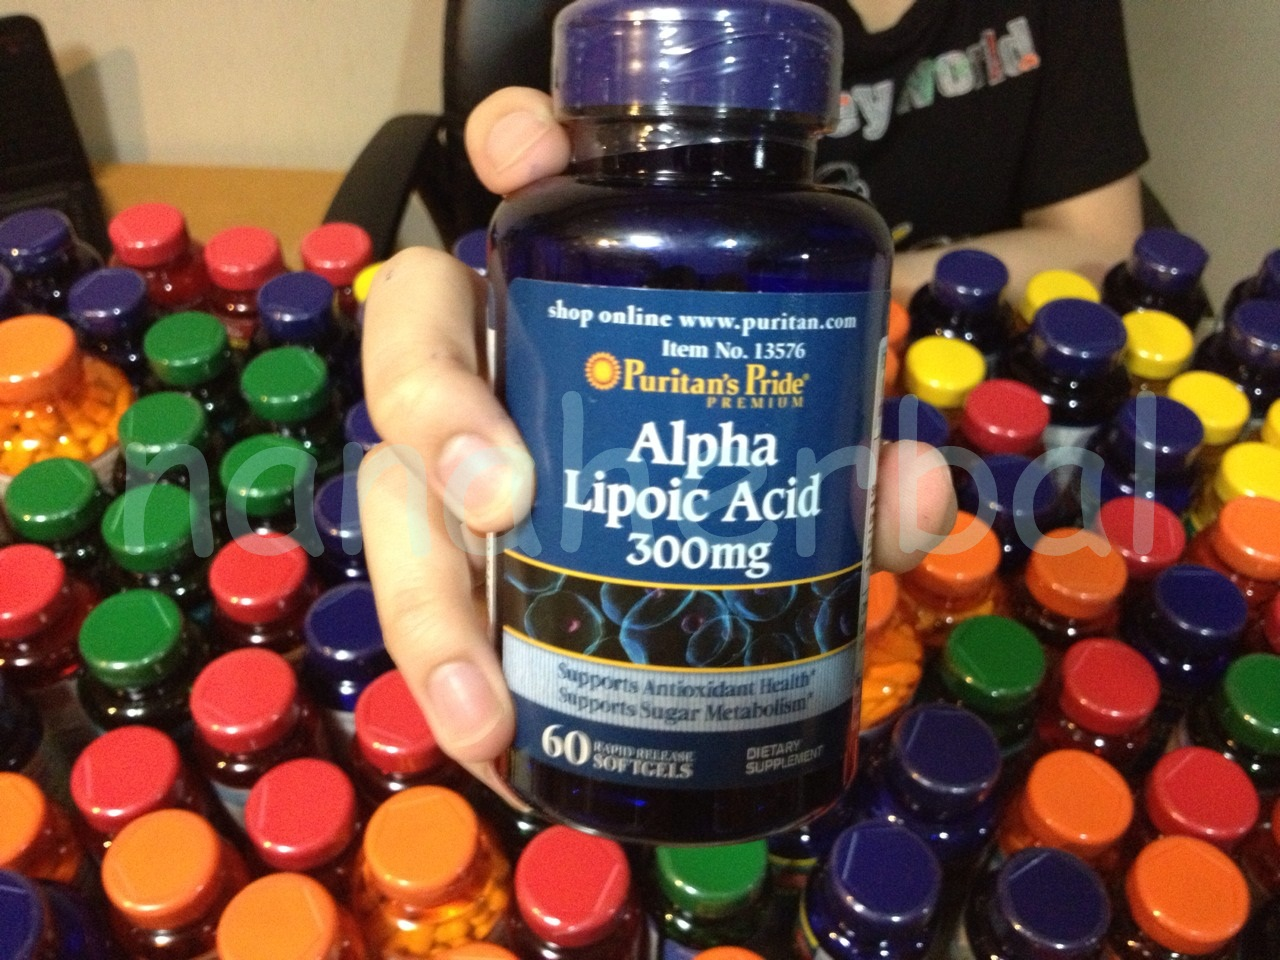 Puritan's Pride Alpha Lipoic Acid 300 mg. 60 Softgels